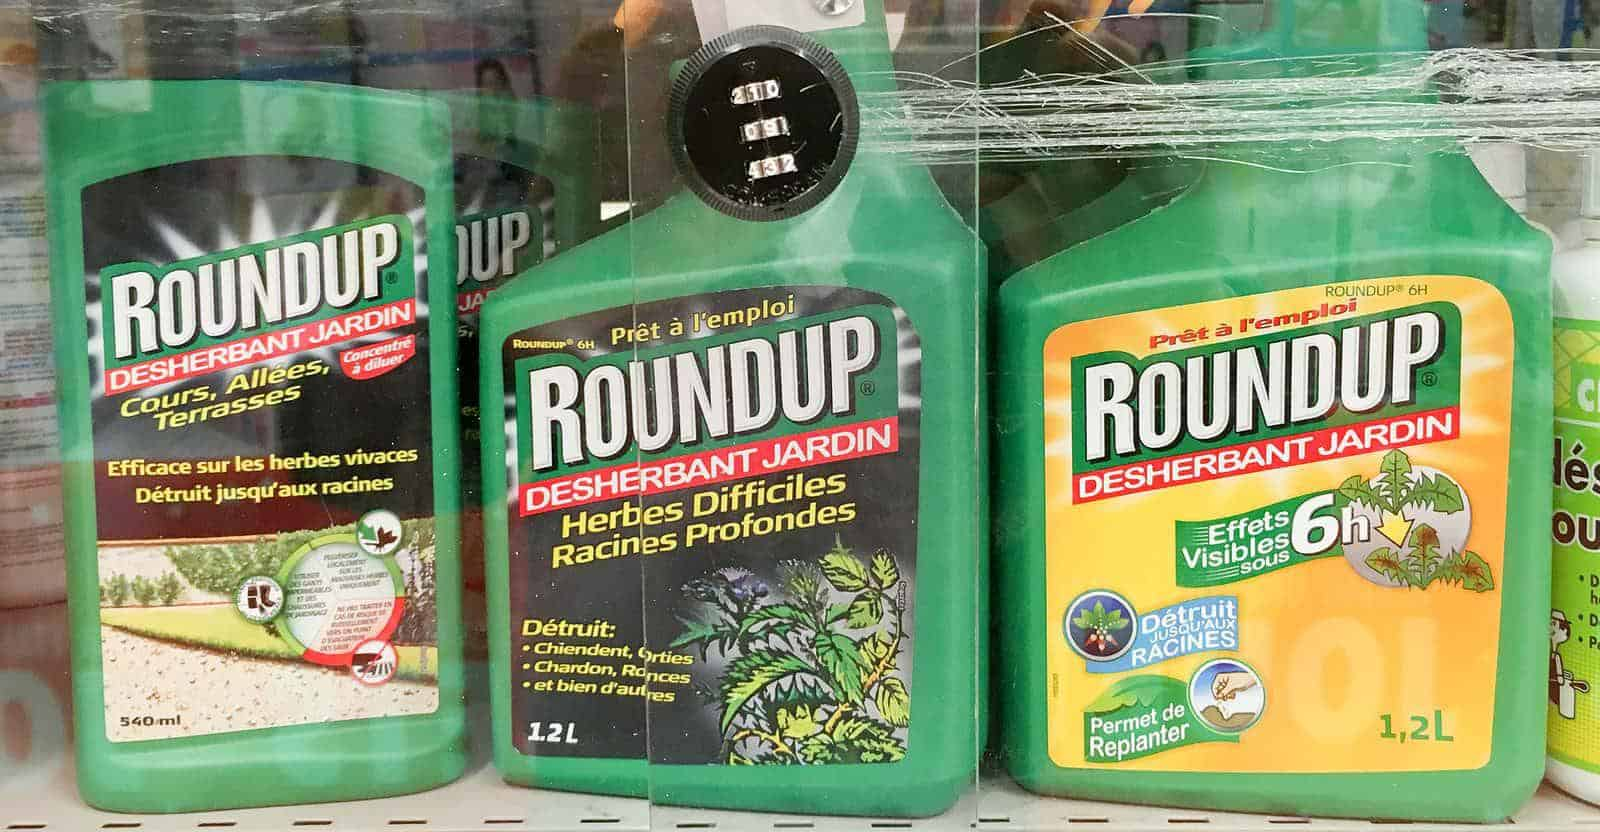 SF jury awards $80M in Monsanto weed killer cancer case